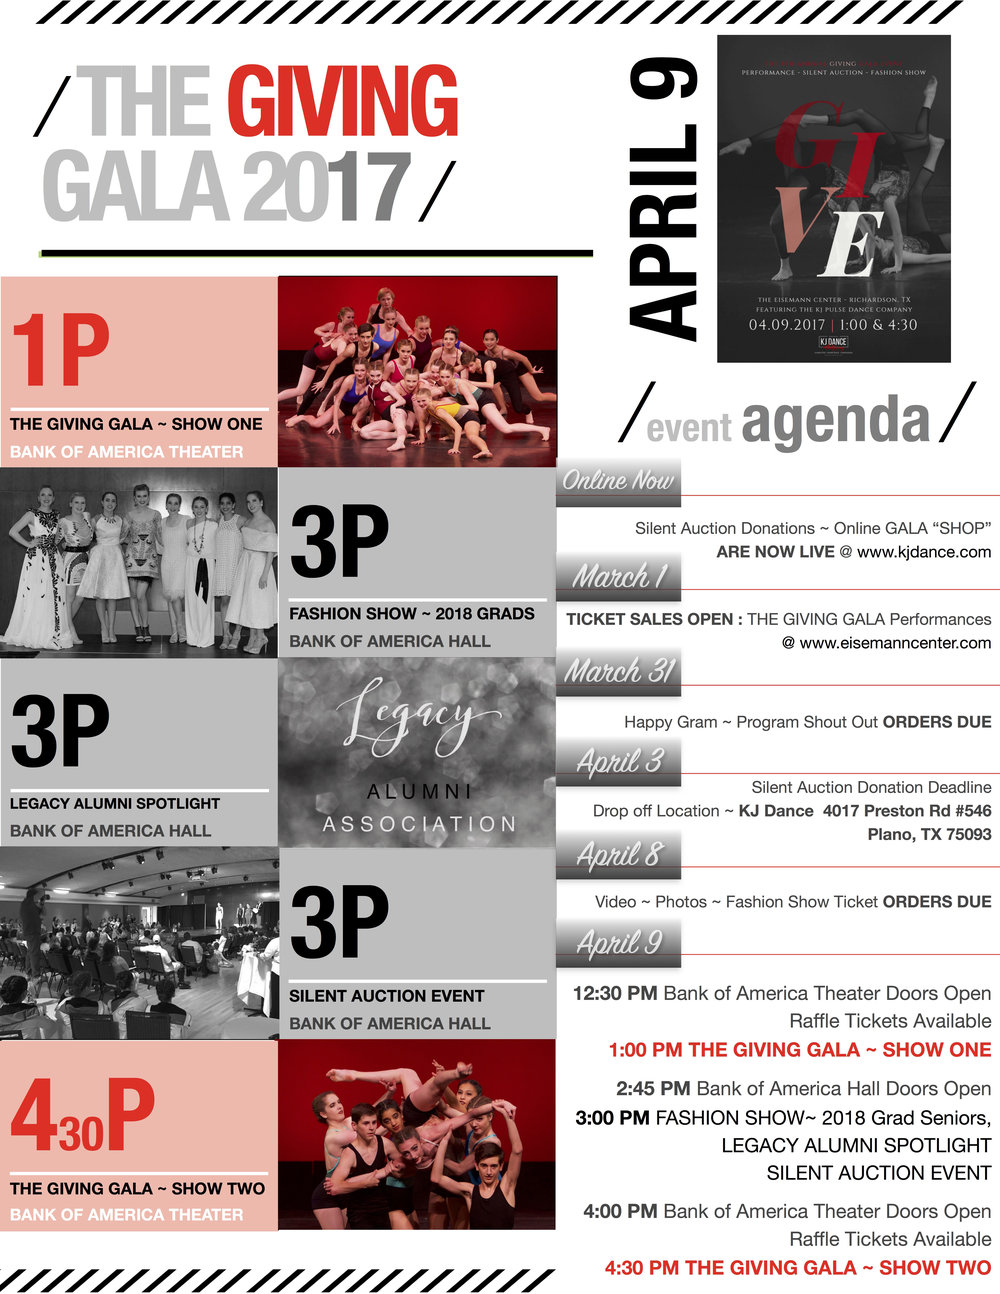 Gala Agenda. Right click to save.